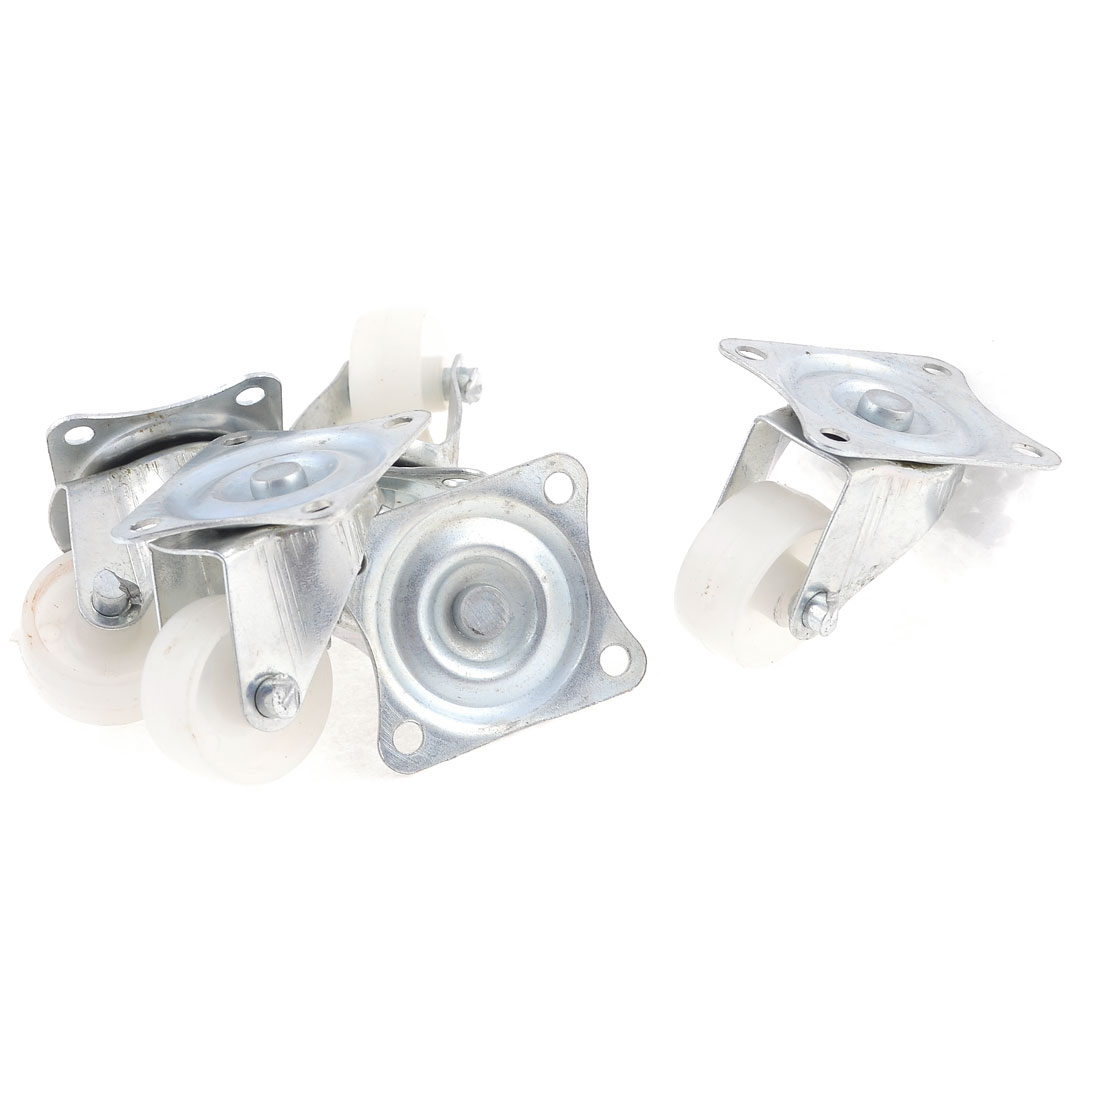 "5Pcs 0.94"" Dia Light Duty Rotary Plate Swivel Caster for Trolley"